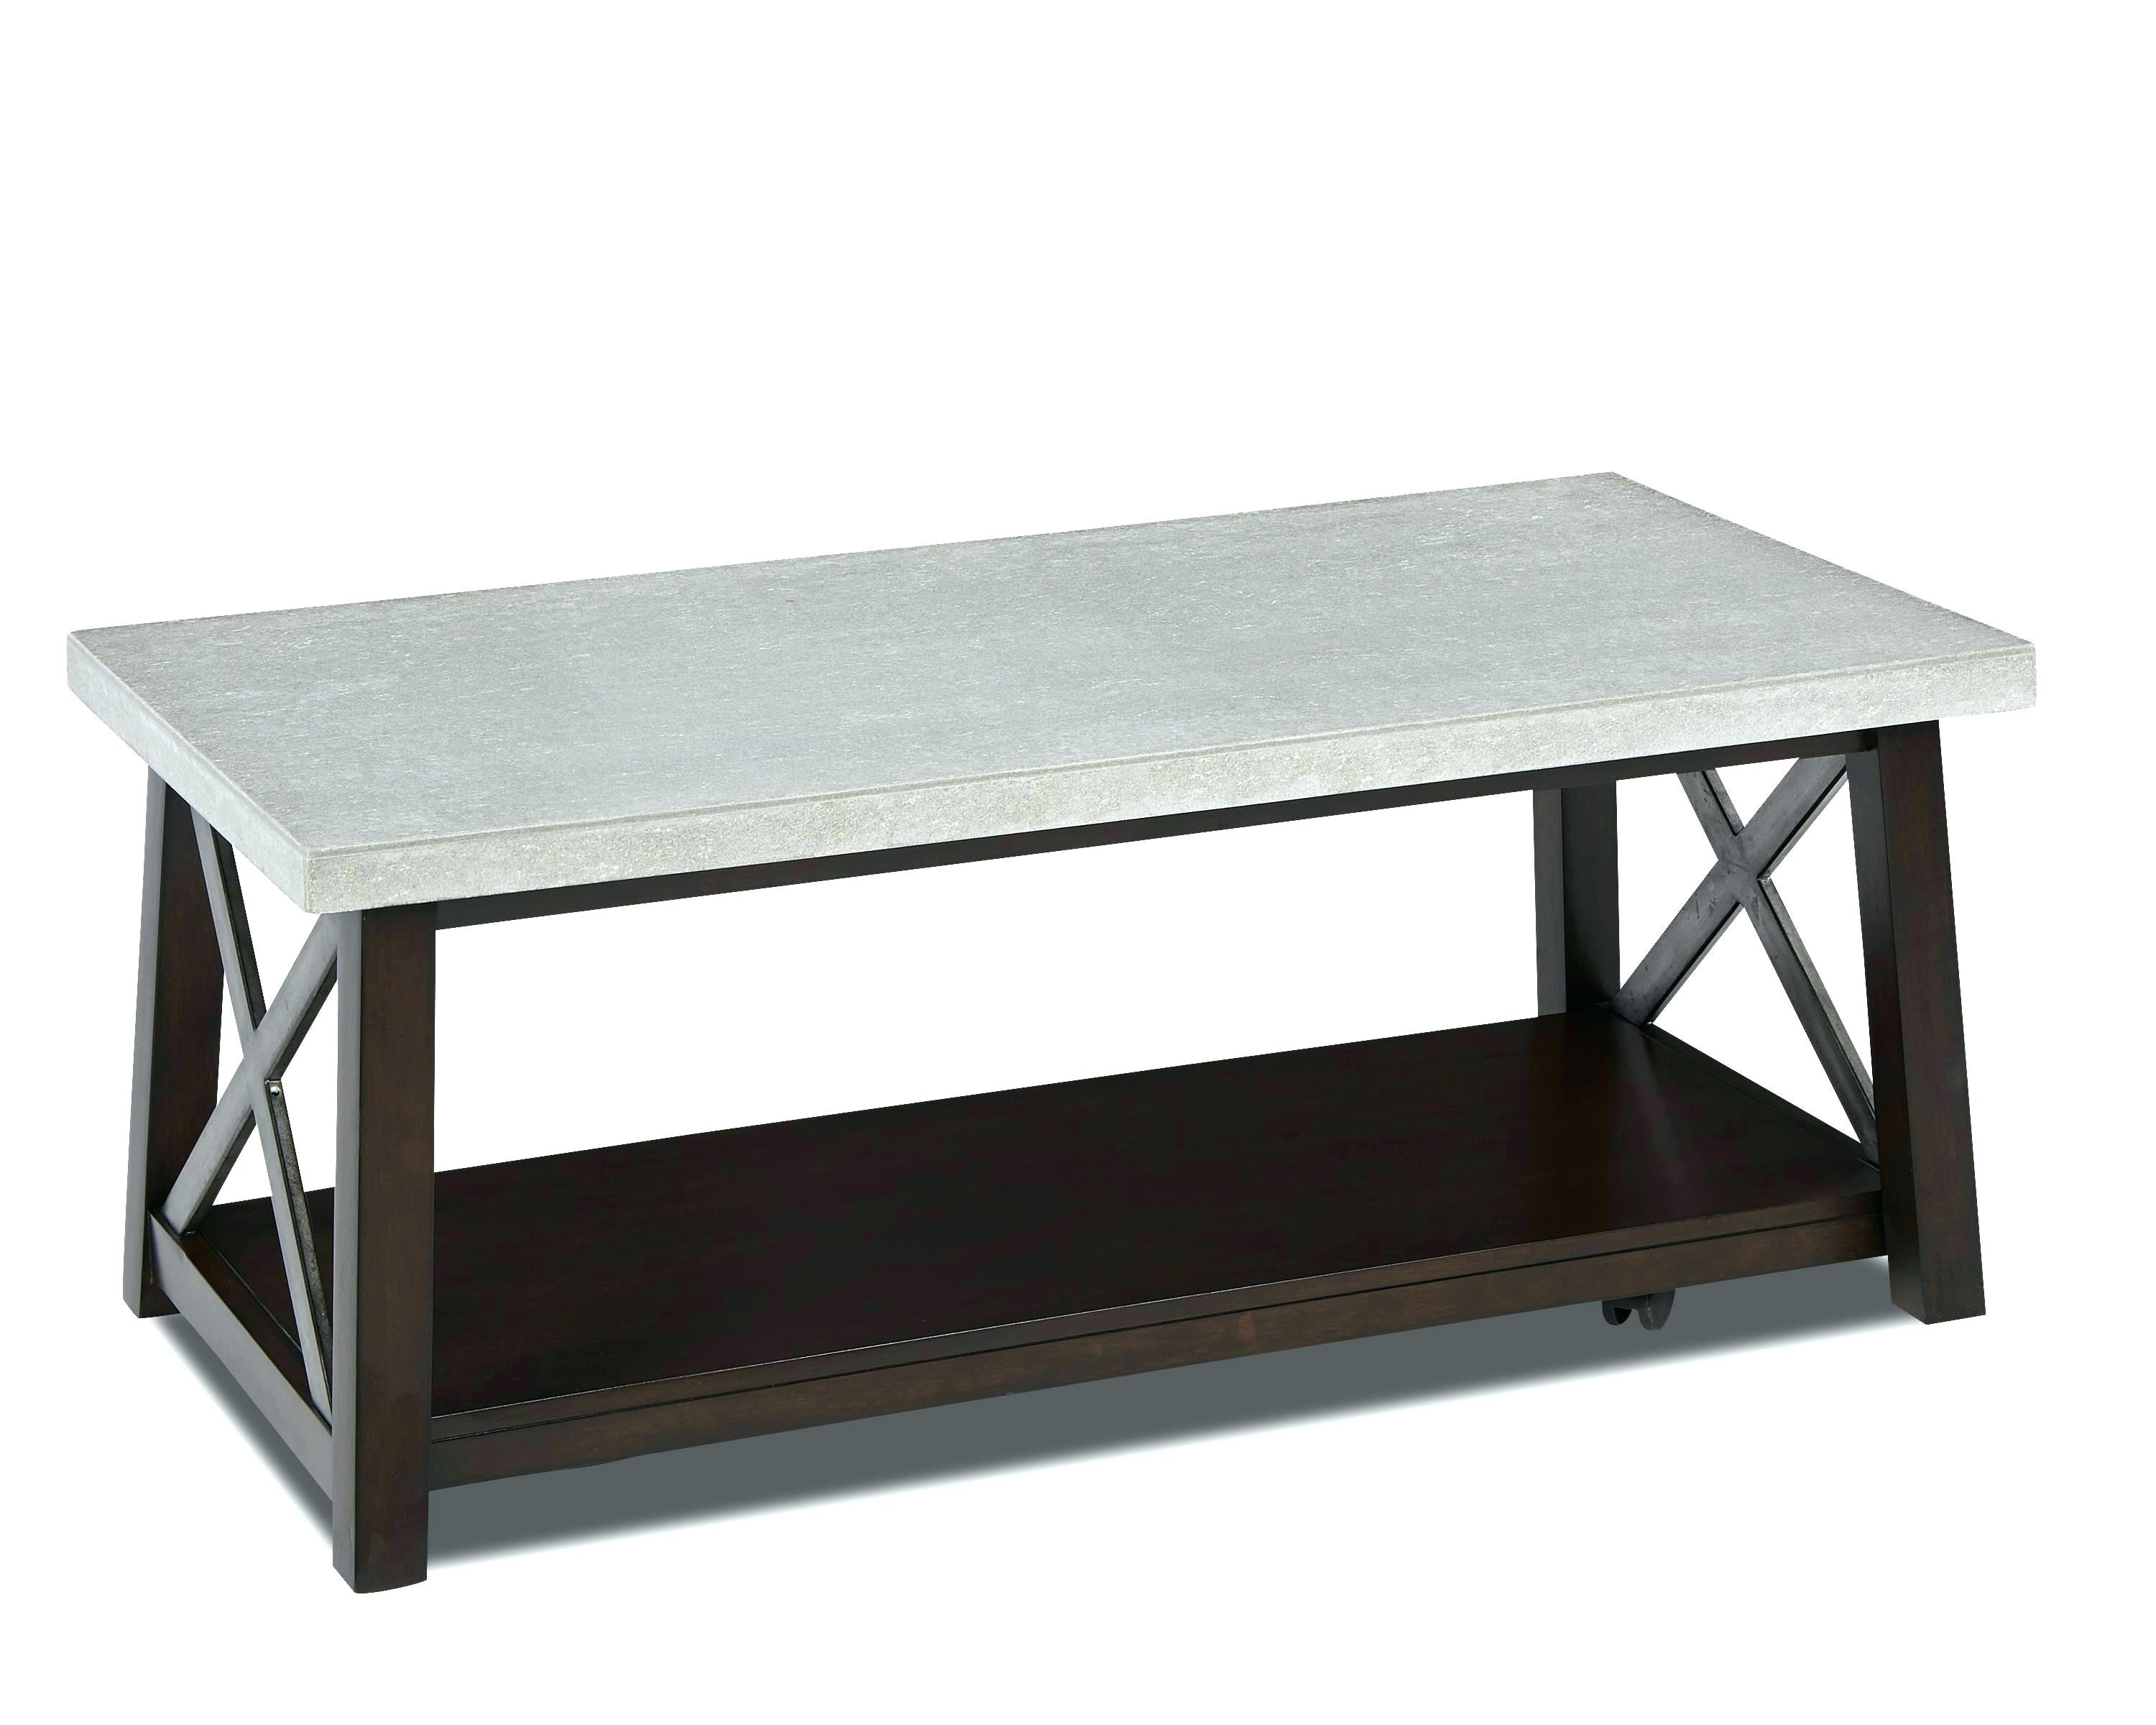 Narrow Coffee Table Beautiful Outdoor Cocktail Table – Timlanane pertaining to Slab Small Marble Coffee Tables With Antiqued Silver Base (Image 20 of 30)